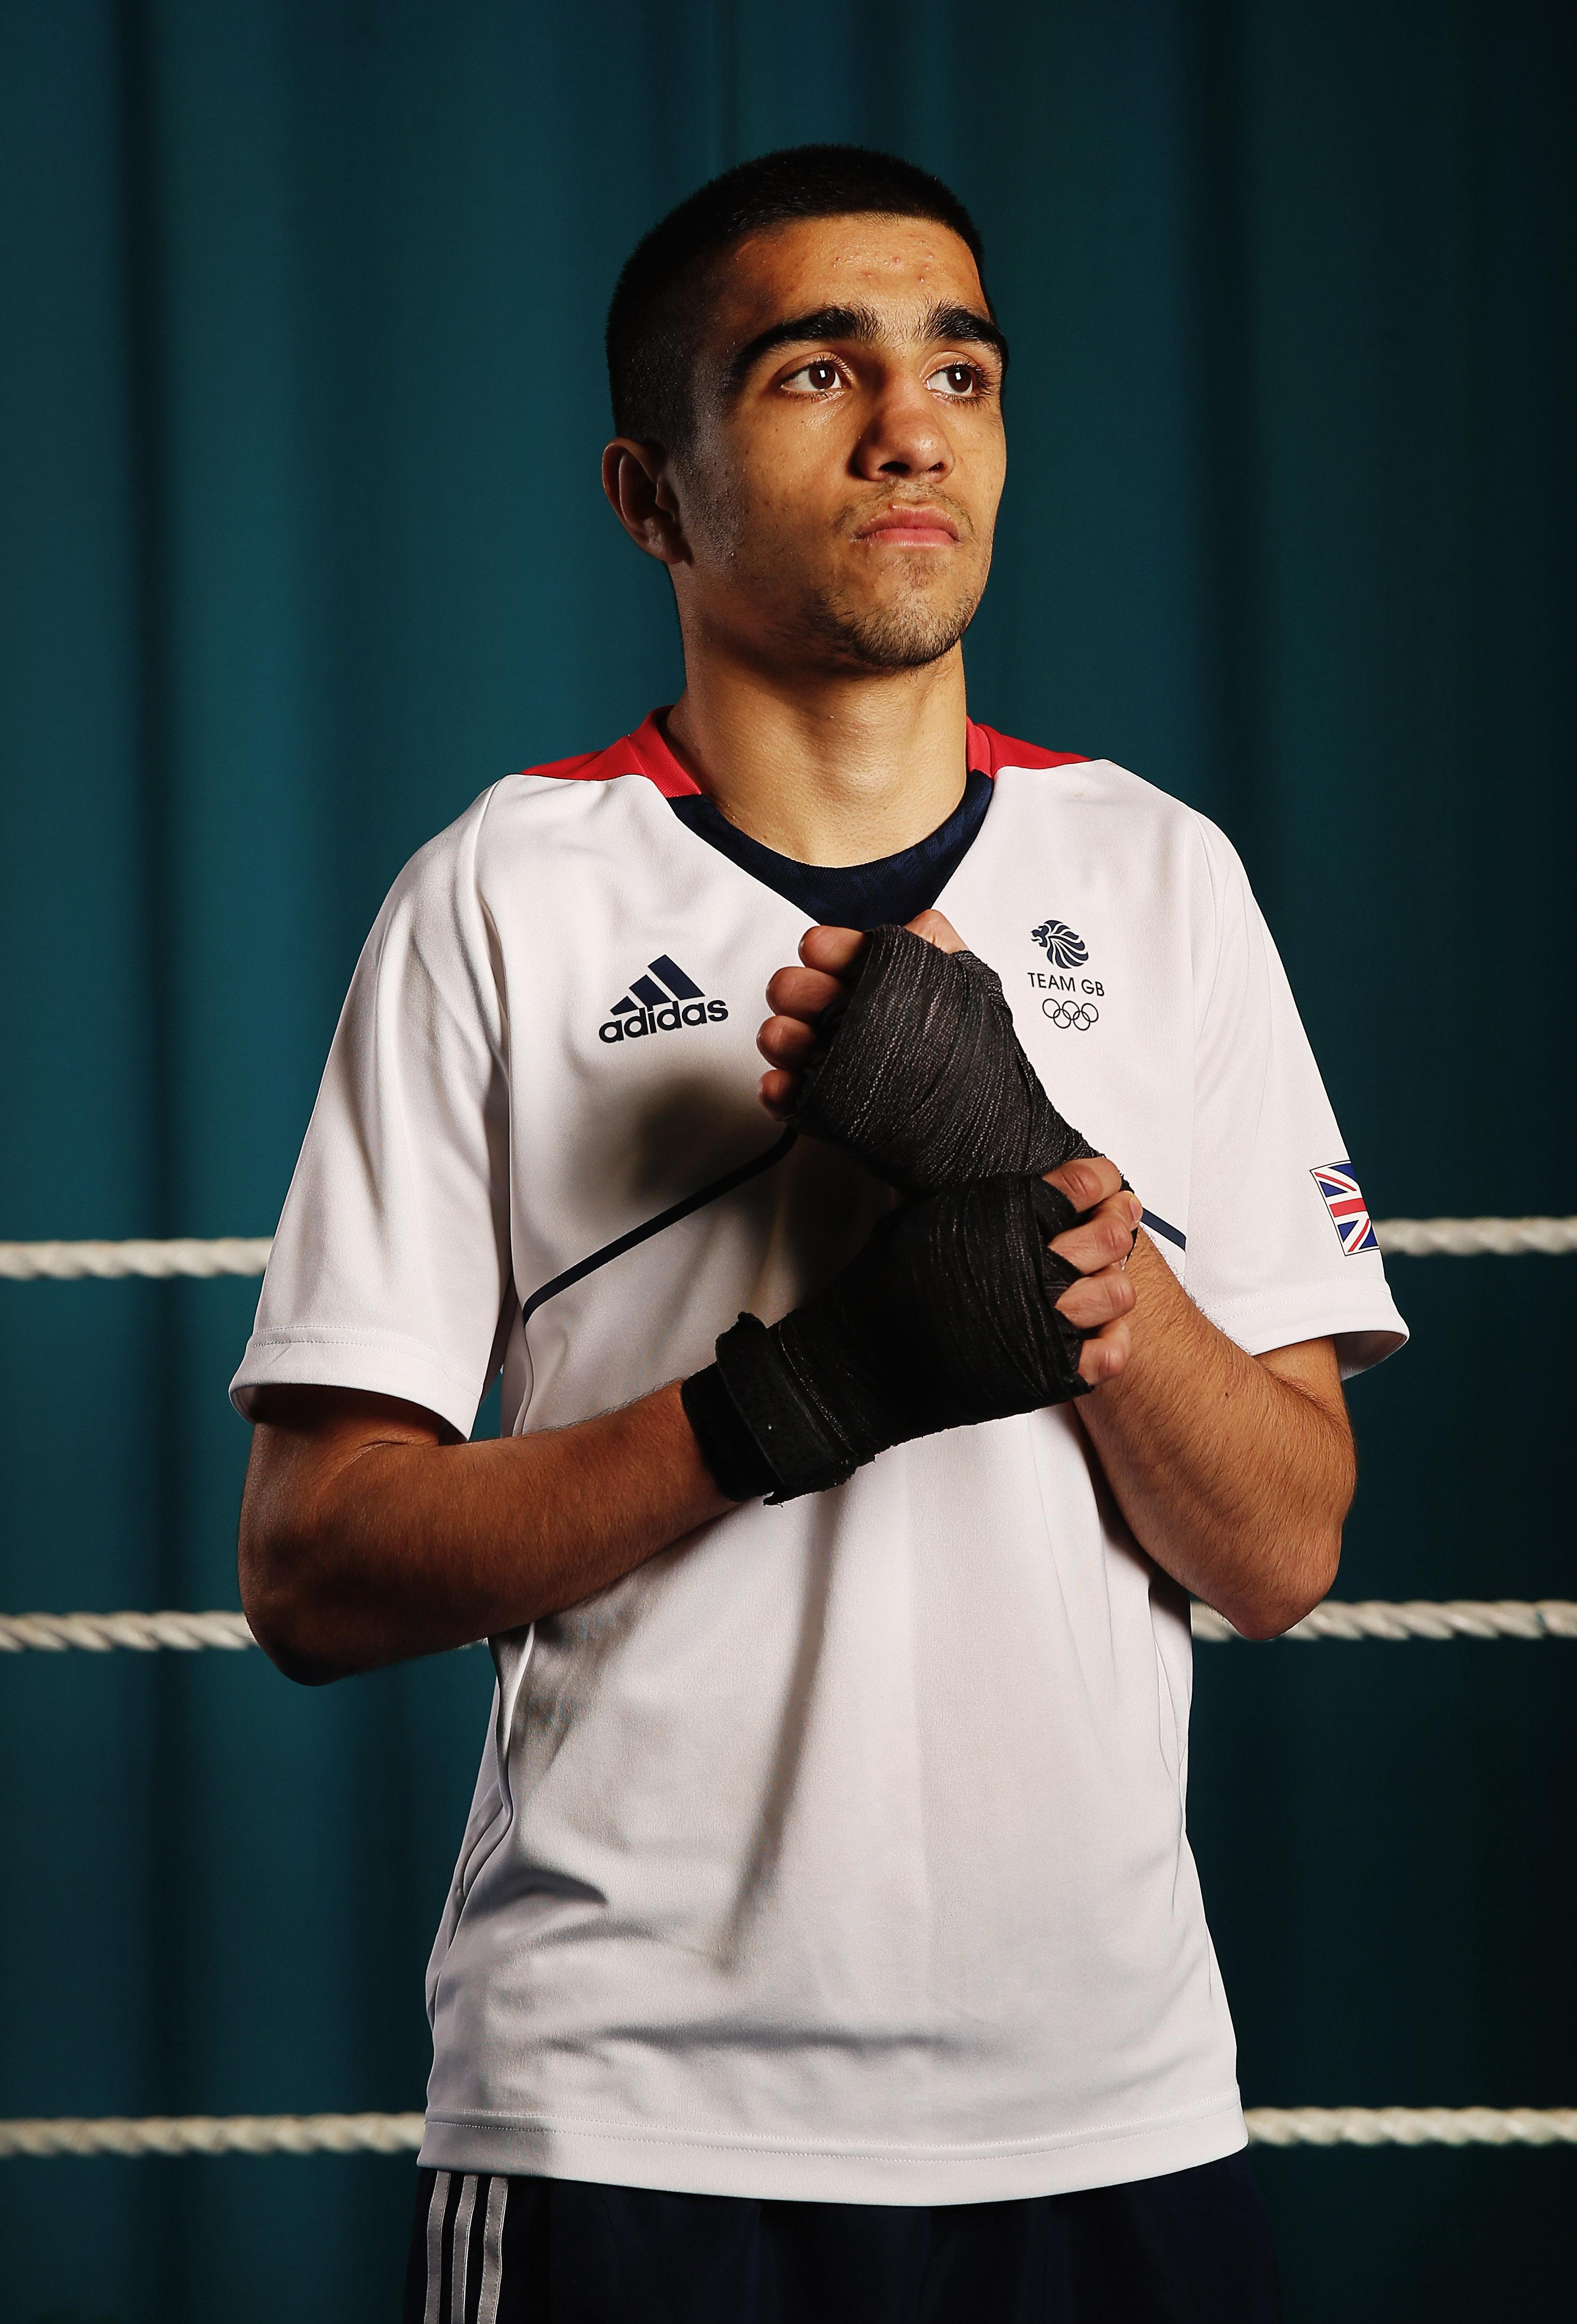 Team GB amateur boxer Muhammad Ali has been banned for two years after testing positive for steroids